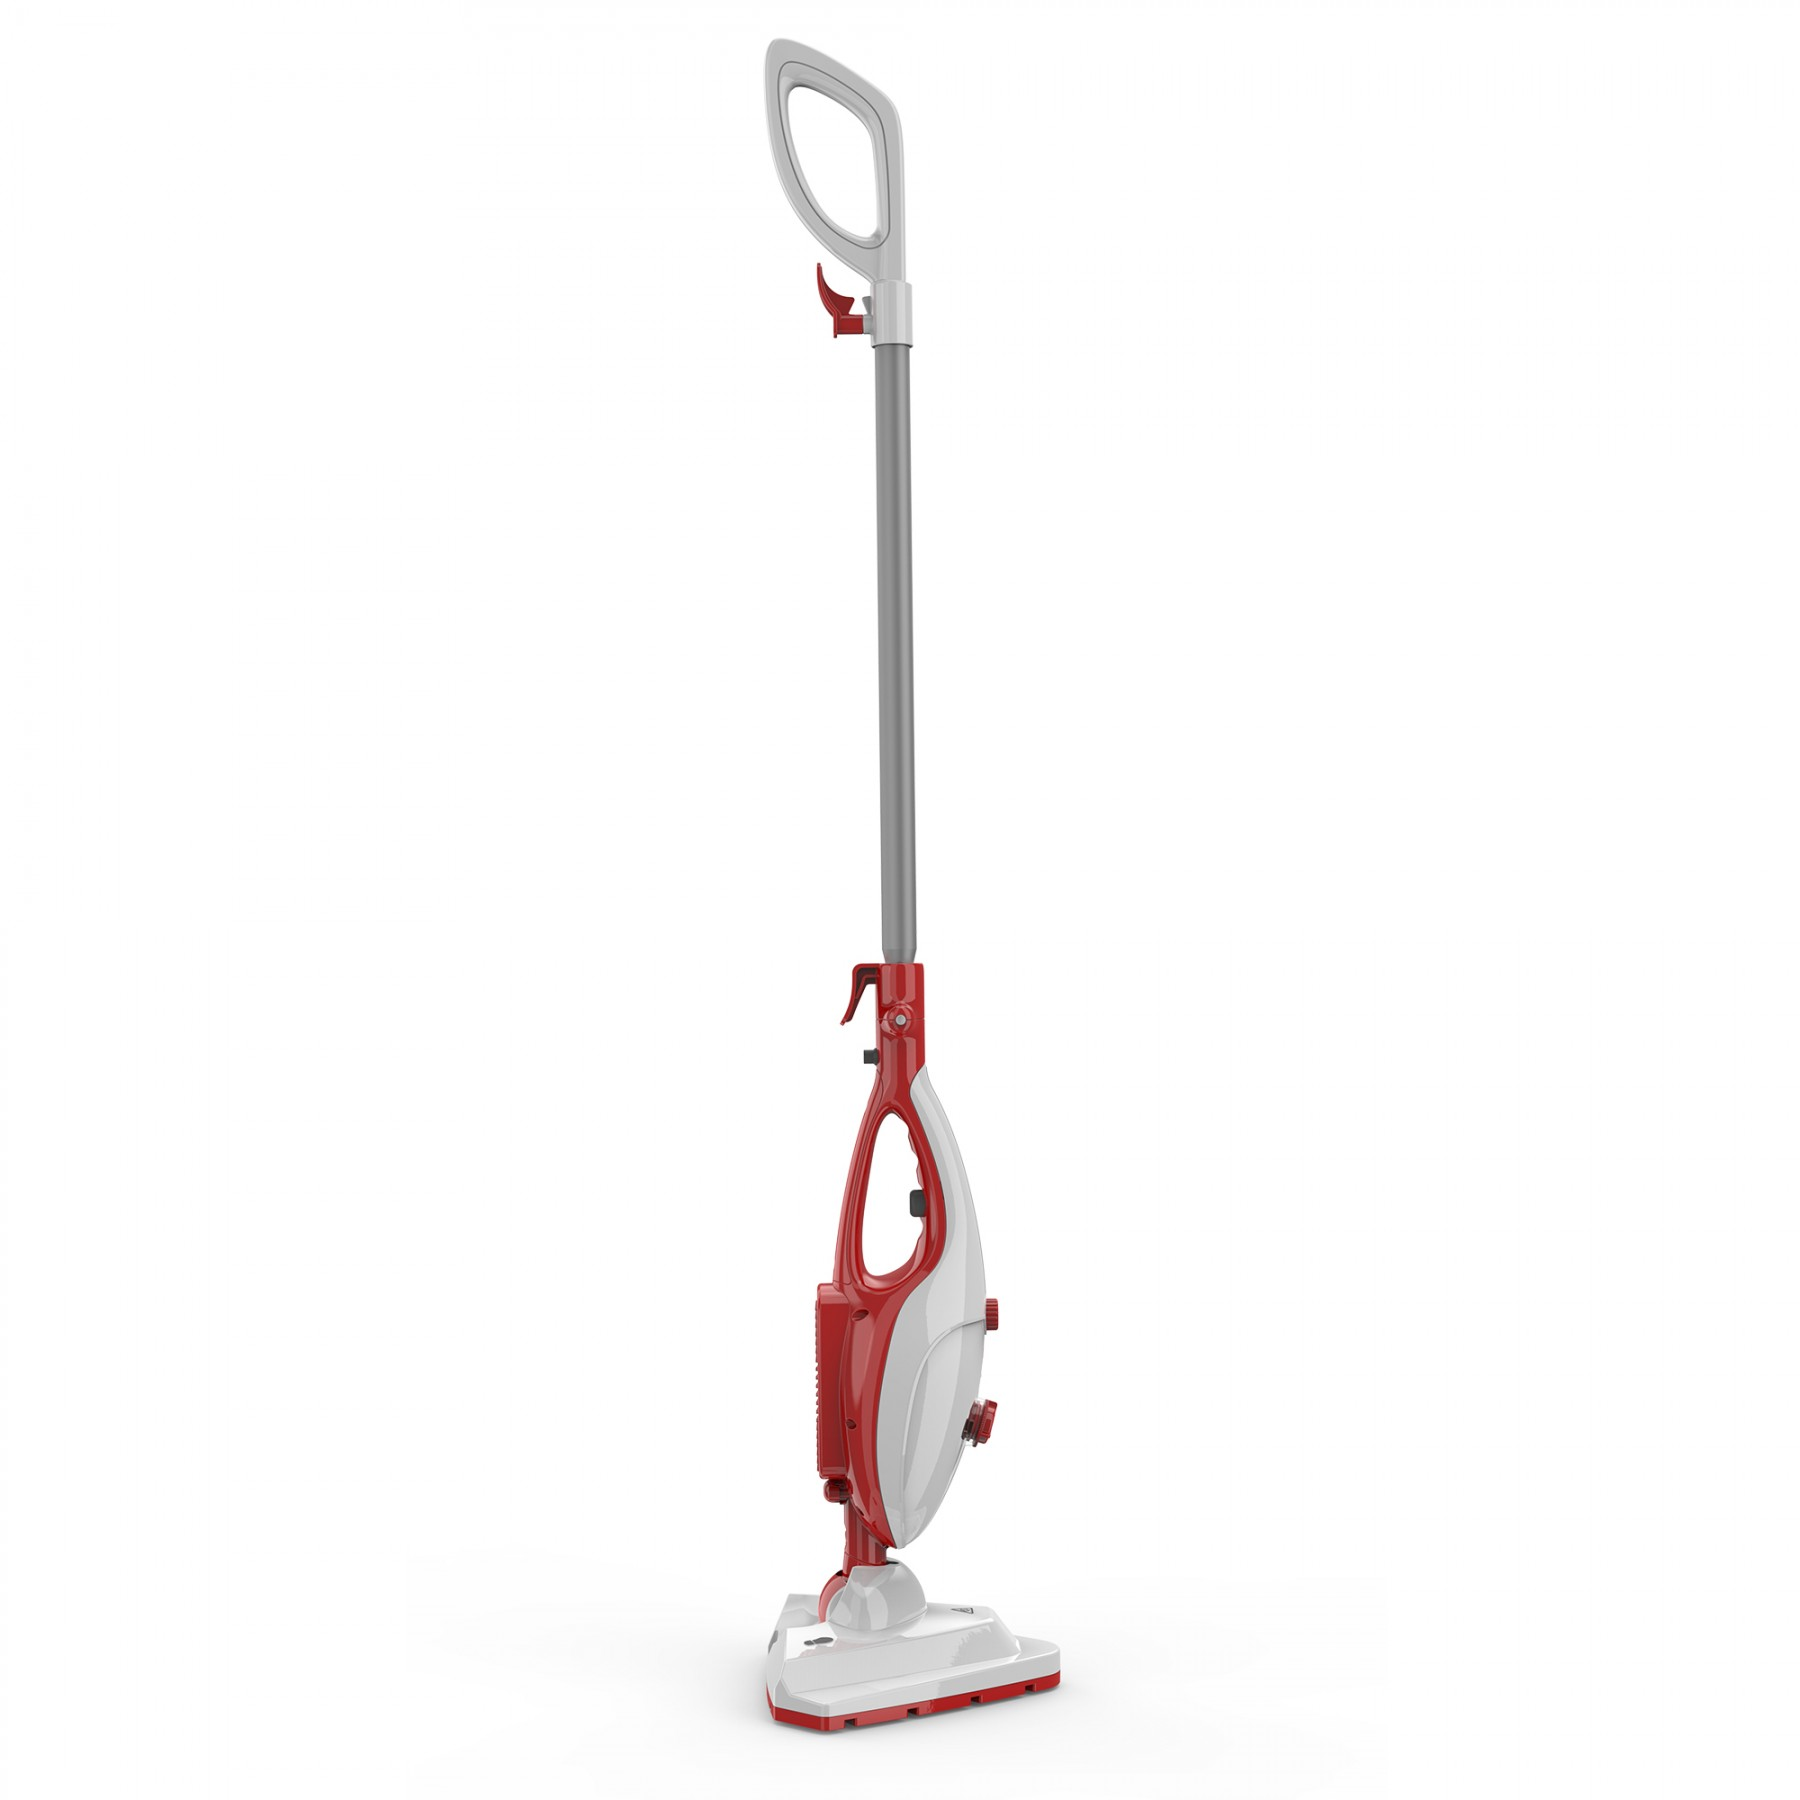 Carpet Steam Cleaner Argos Carpet Steam Cleaner